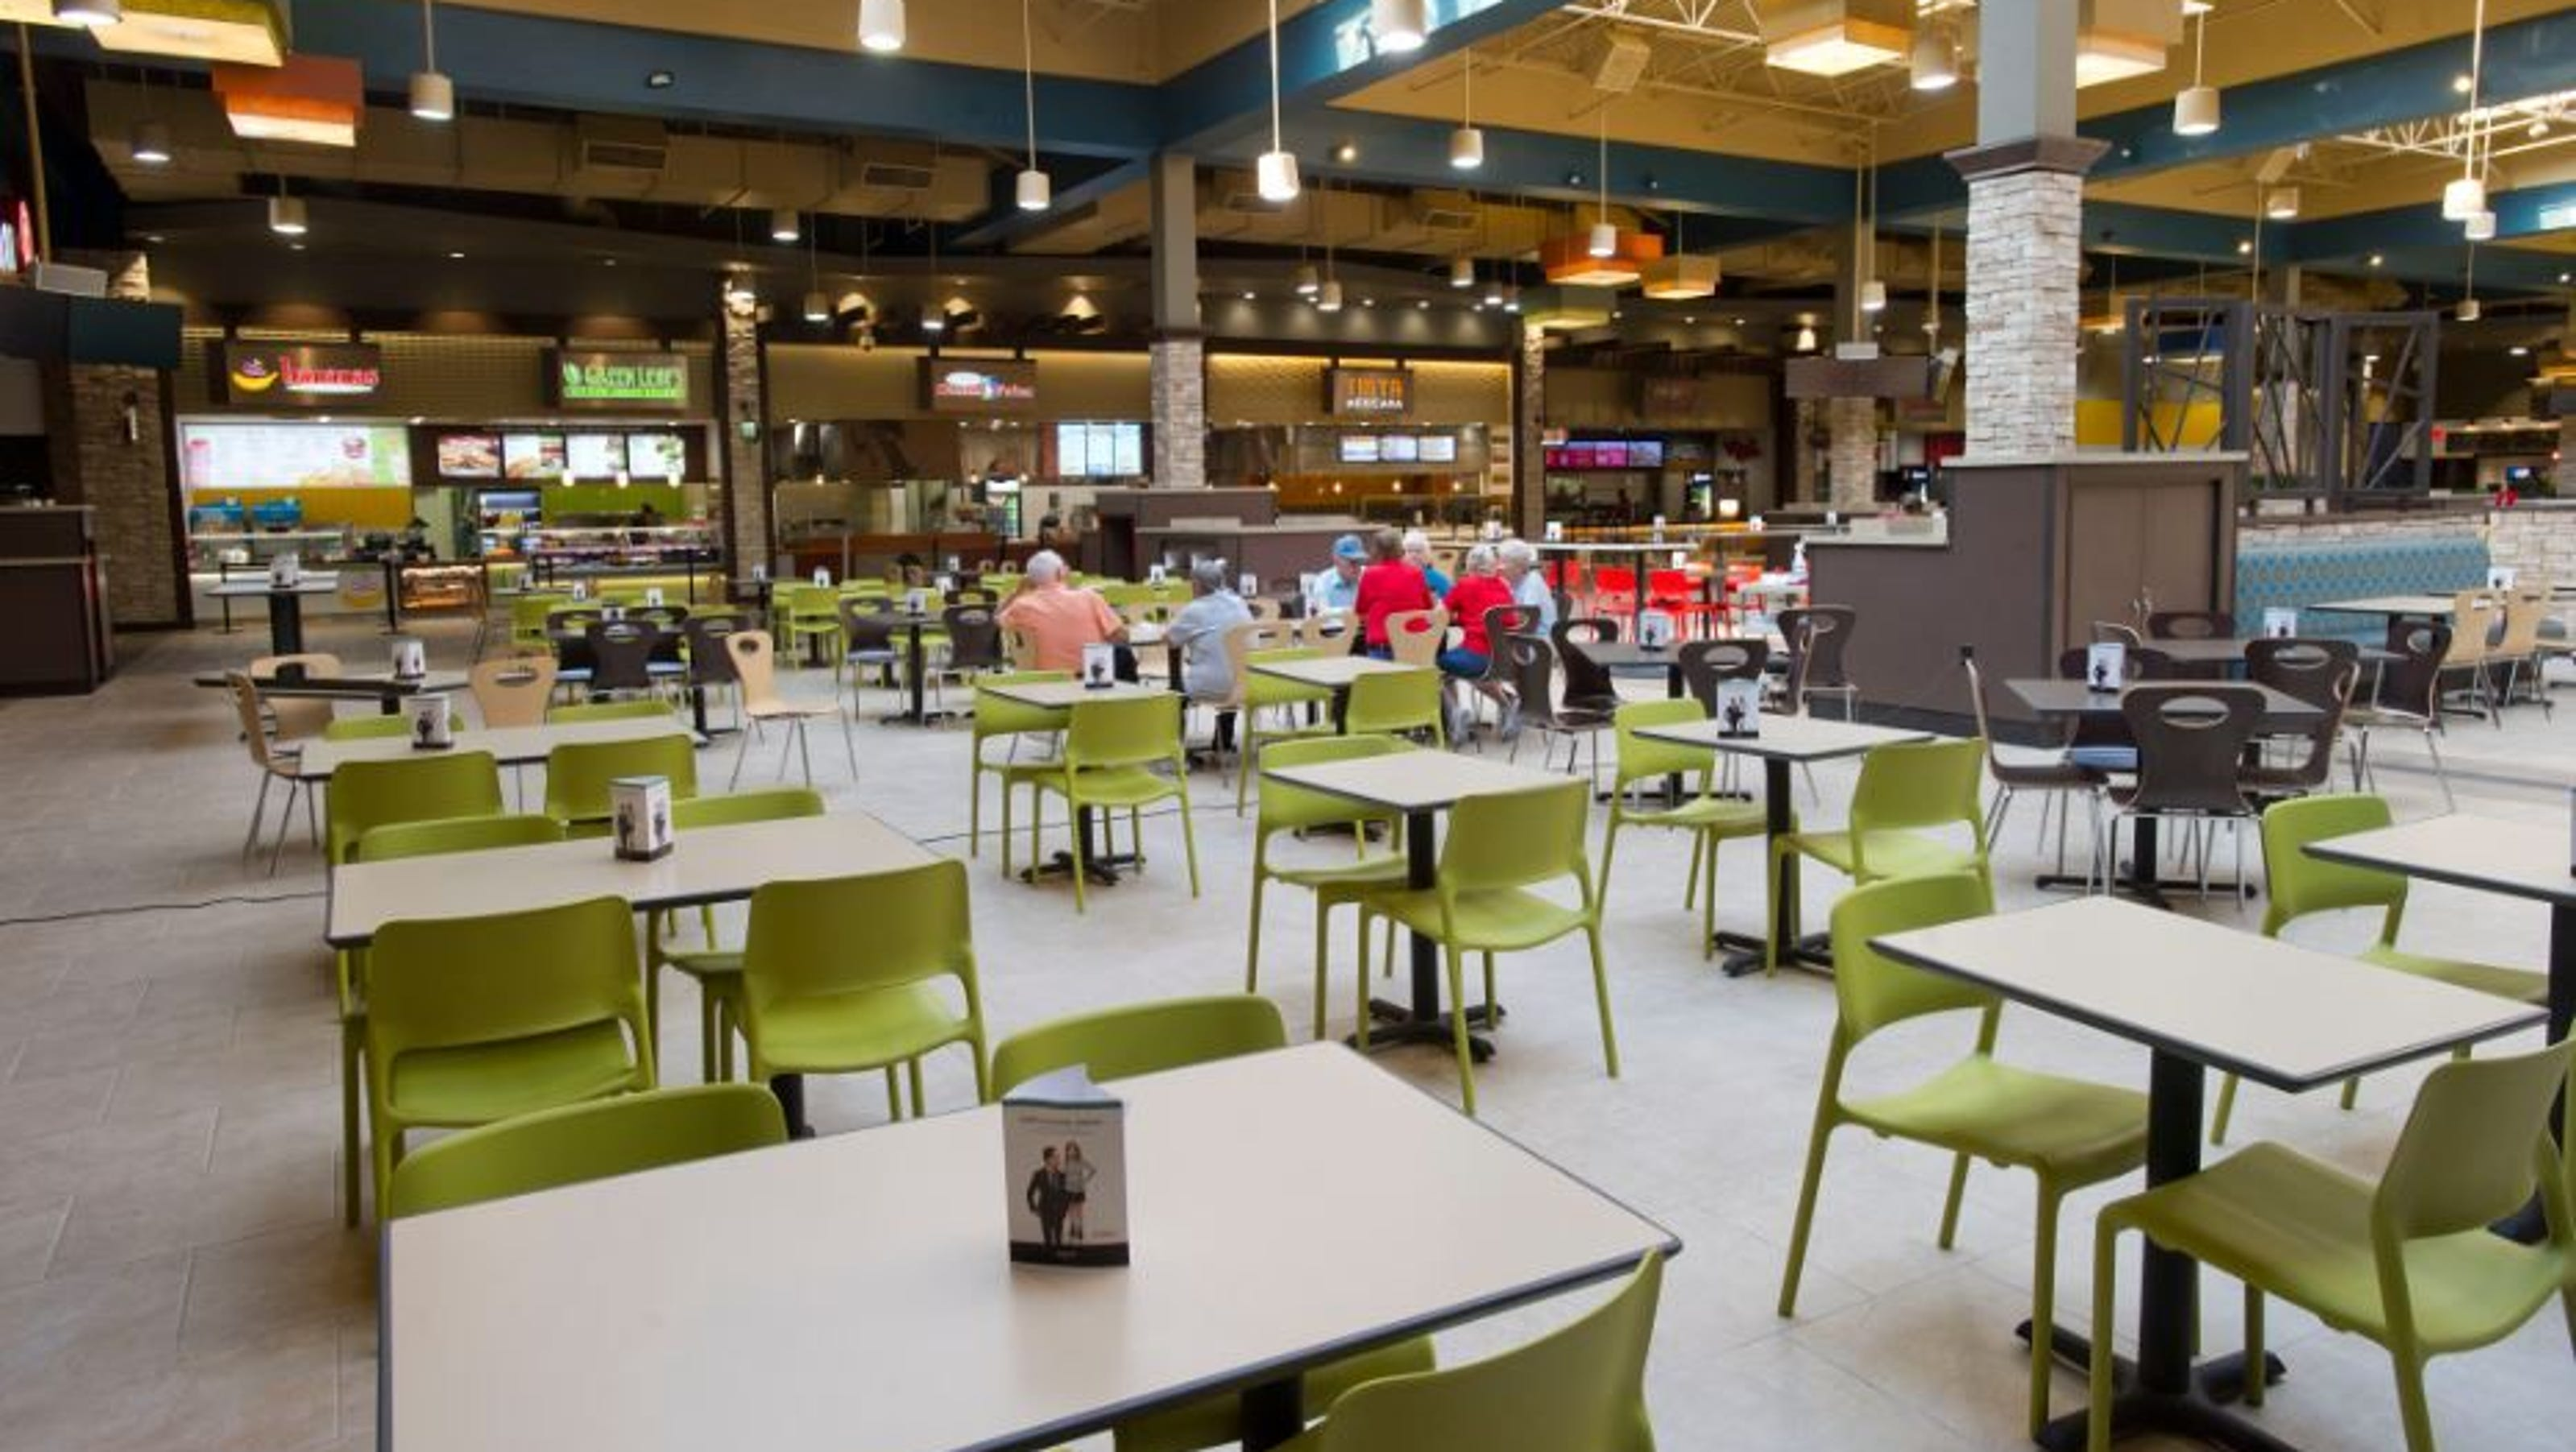 Arizona Mills Food Court Restaurants